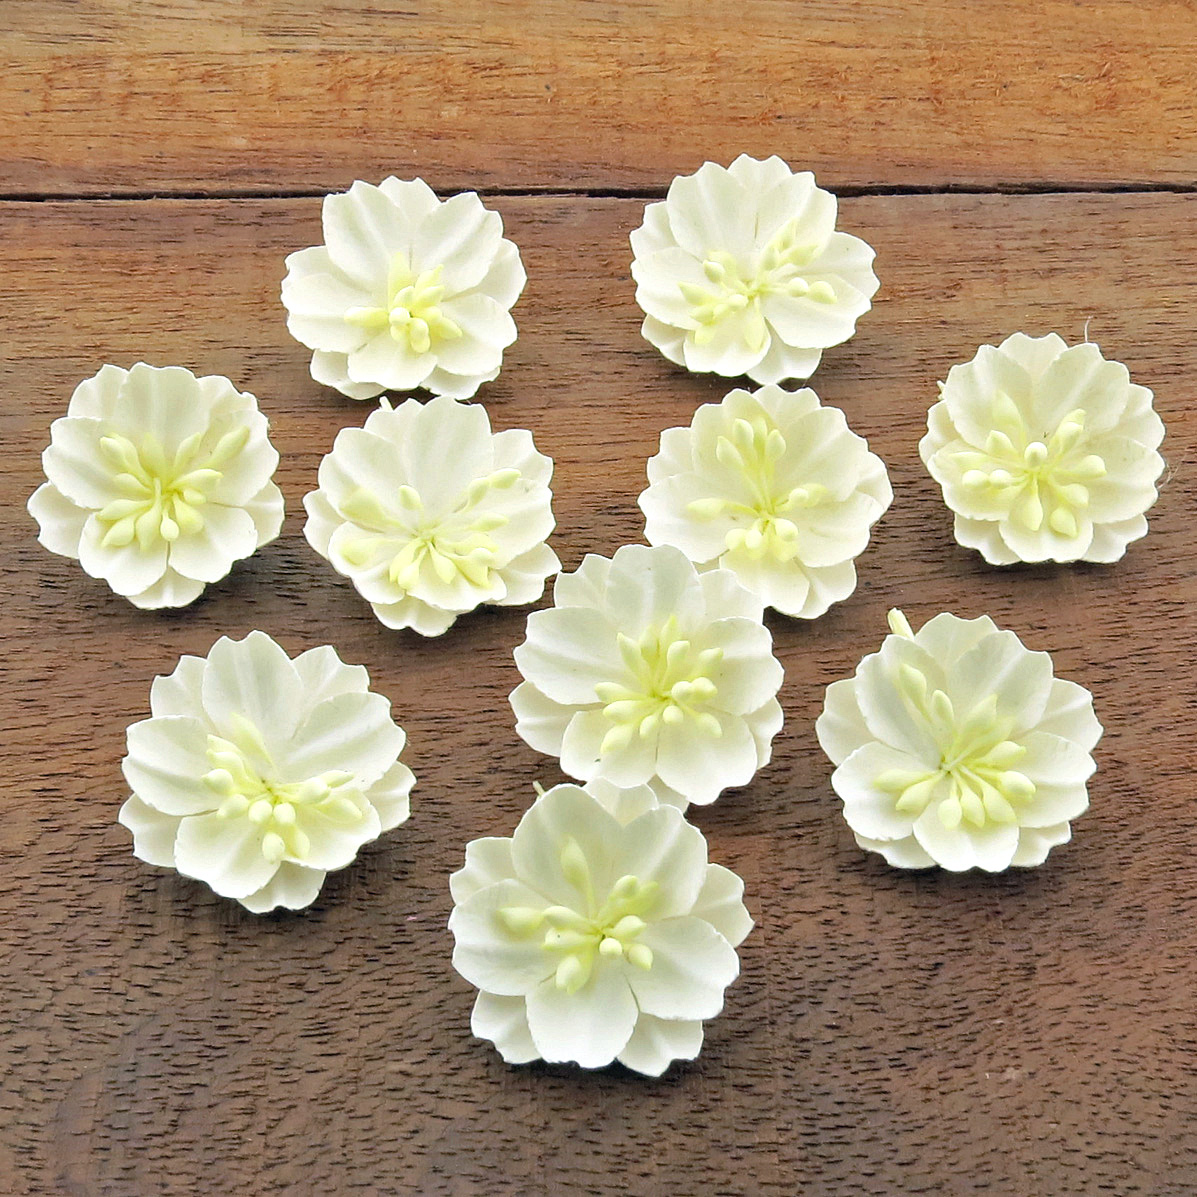 WHITE COTTON STEM MULBERRY PAPER FLOWERS - SET A